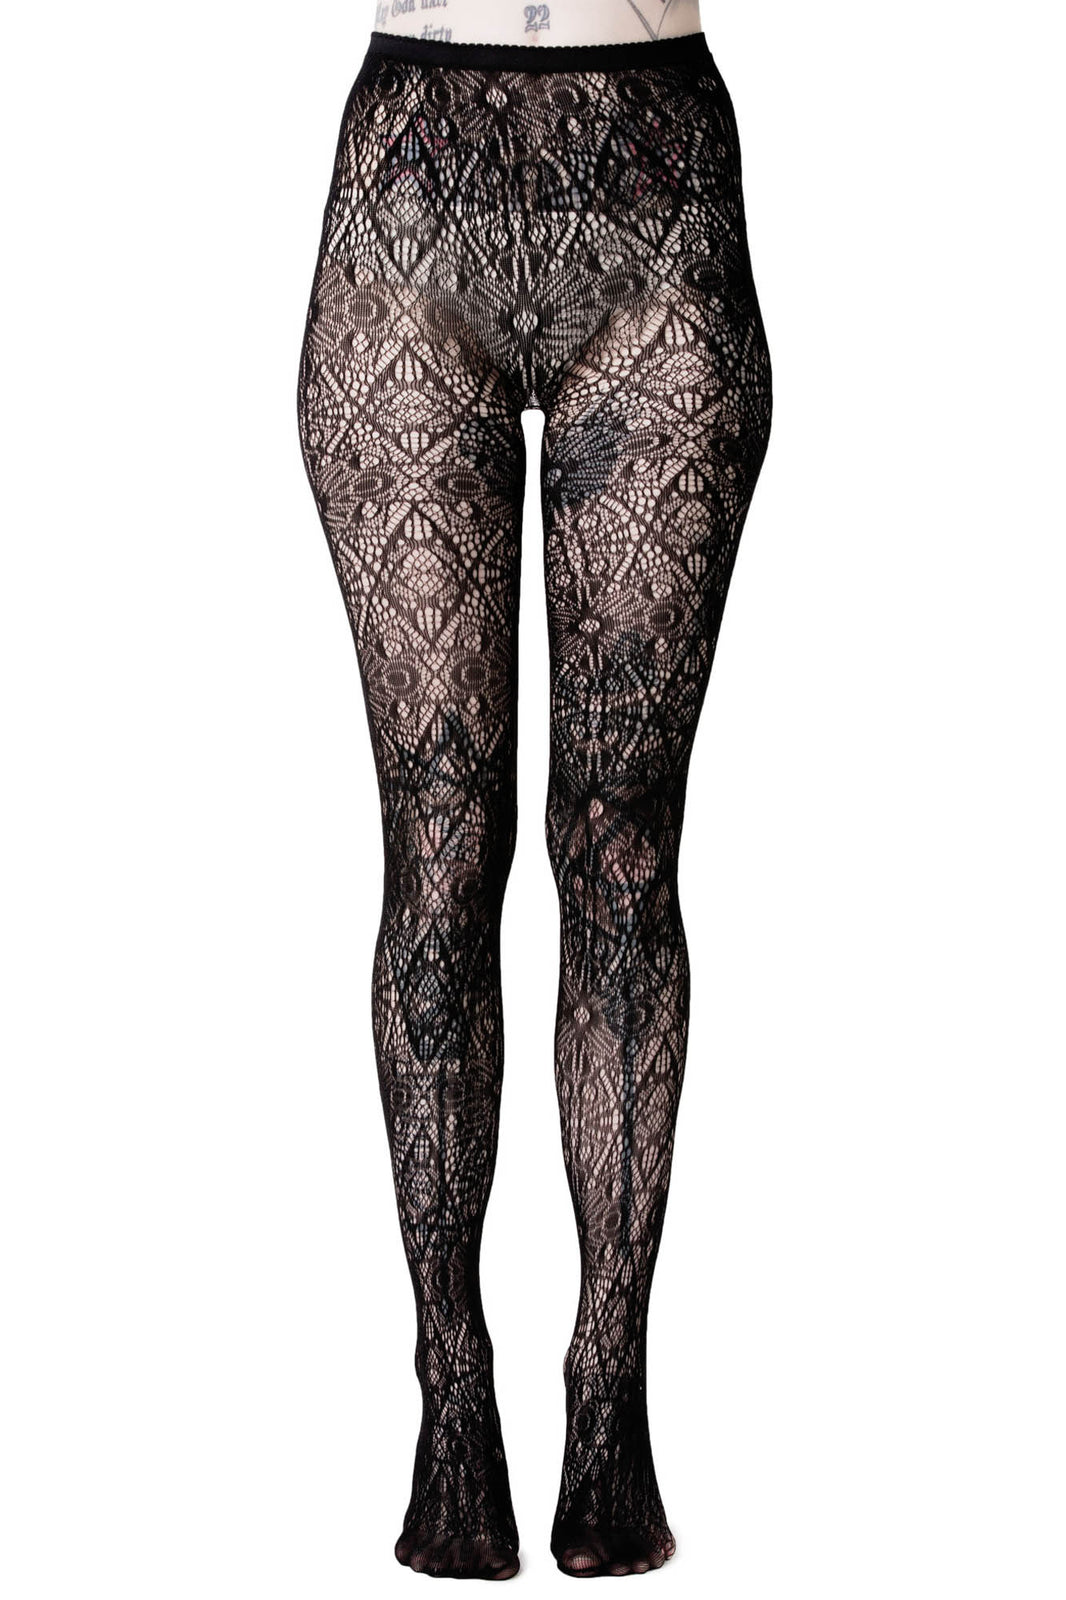 Poison Path Tights [B]